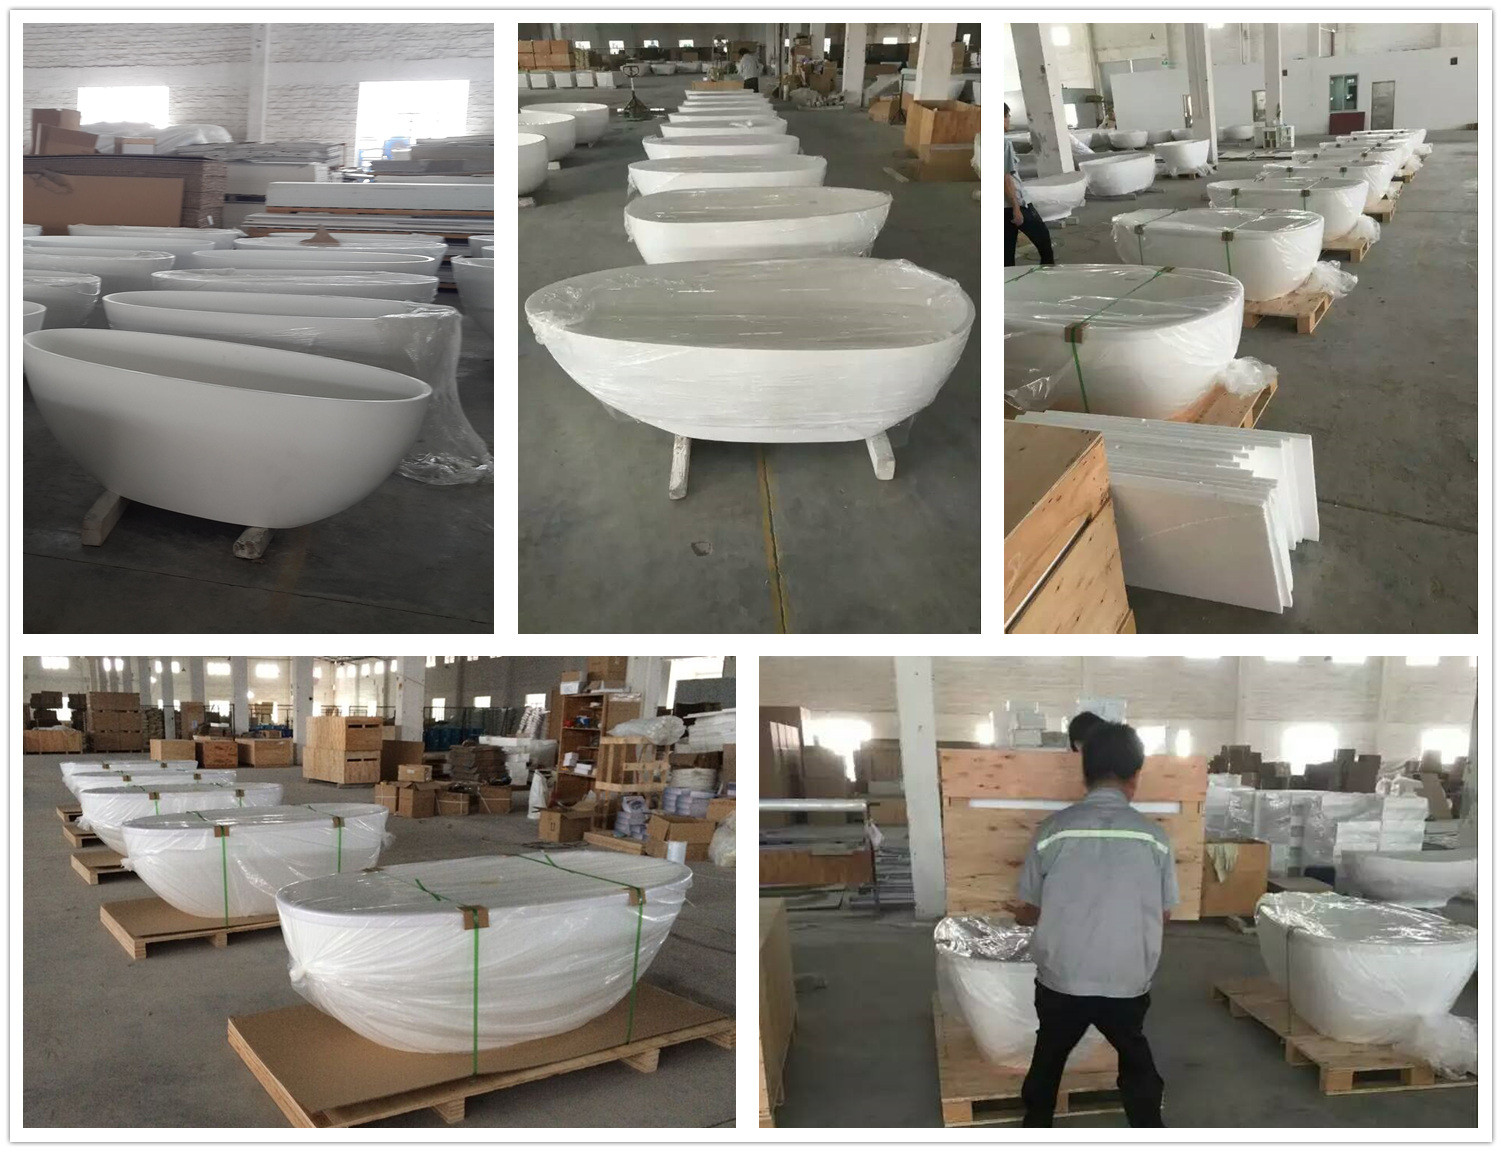 Bellissimo-Artificial marble Solid surface bathroom tub resin stone bathtub-9